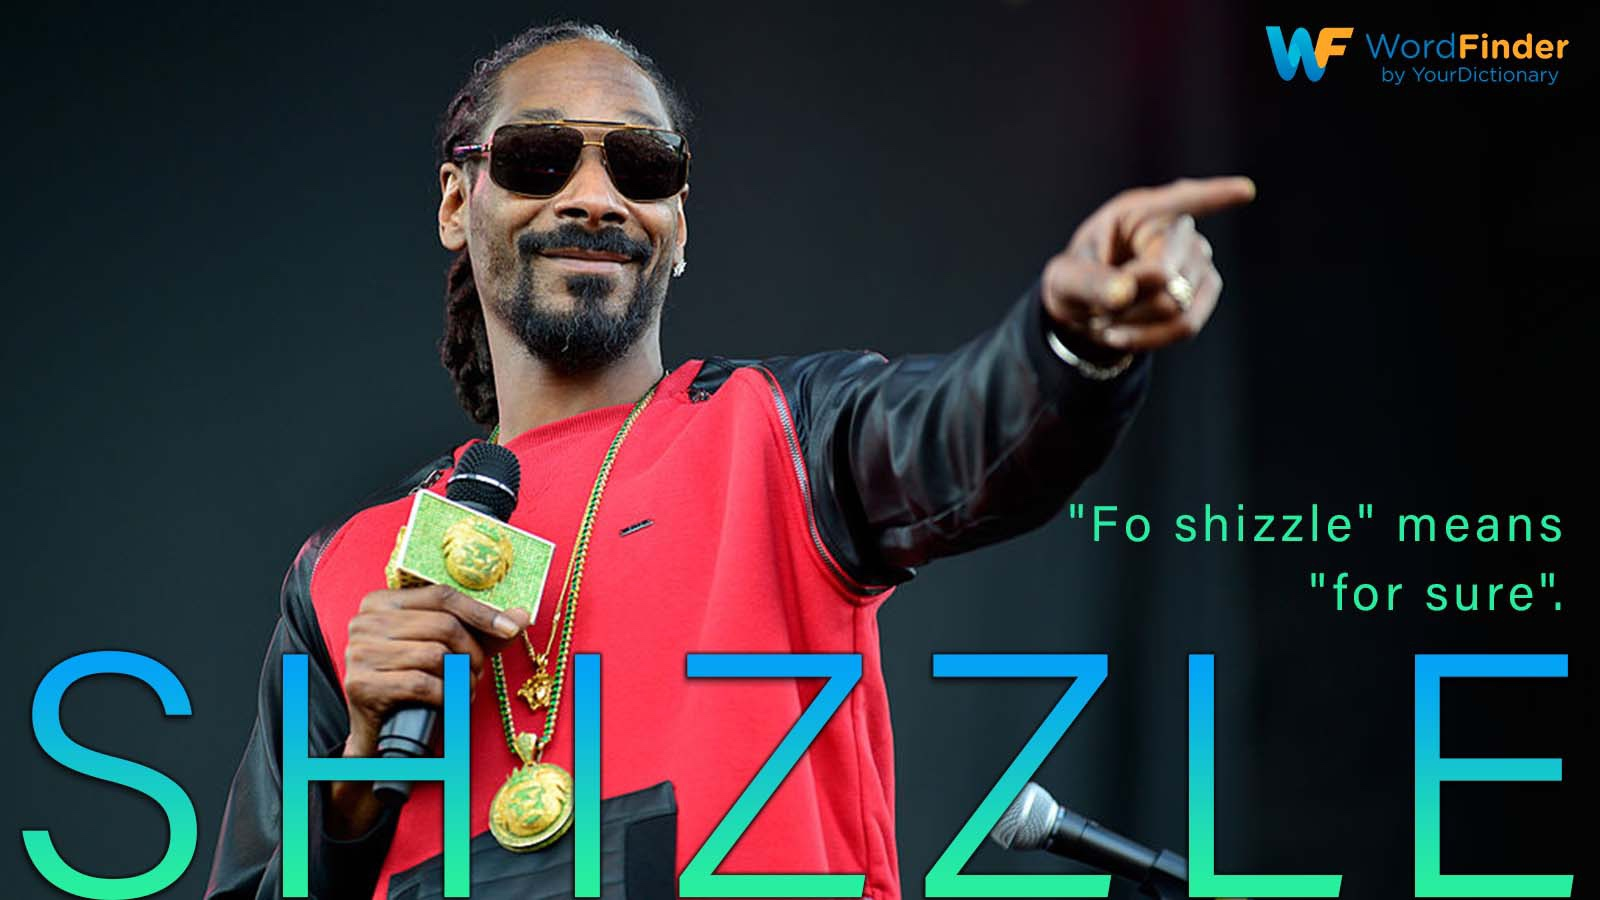 definition shizzle Snoop Dogg